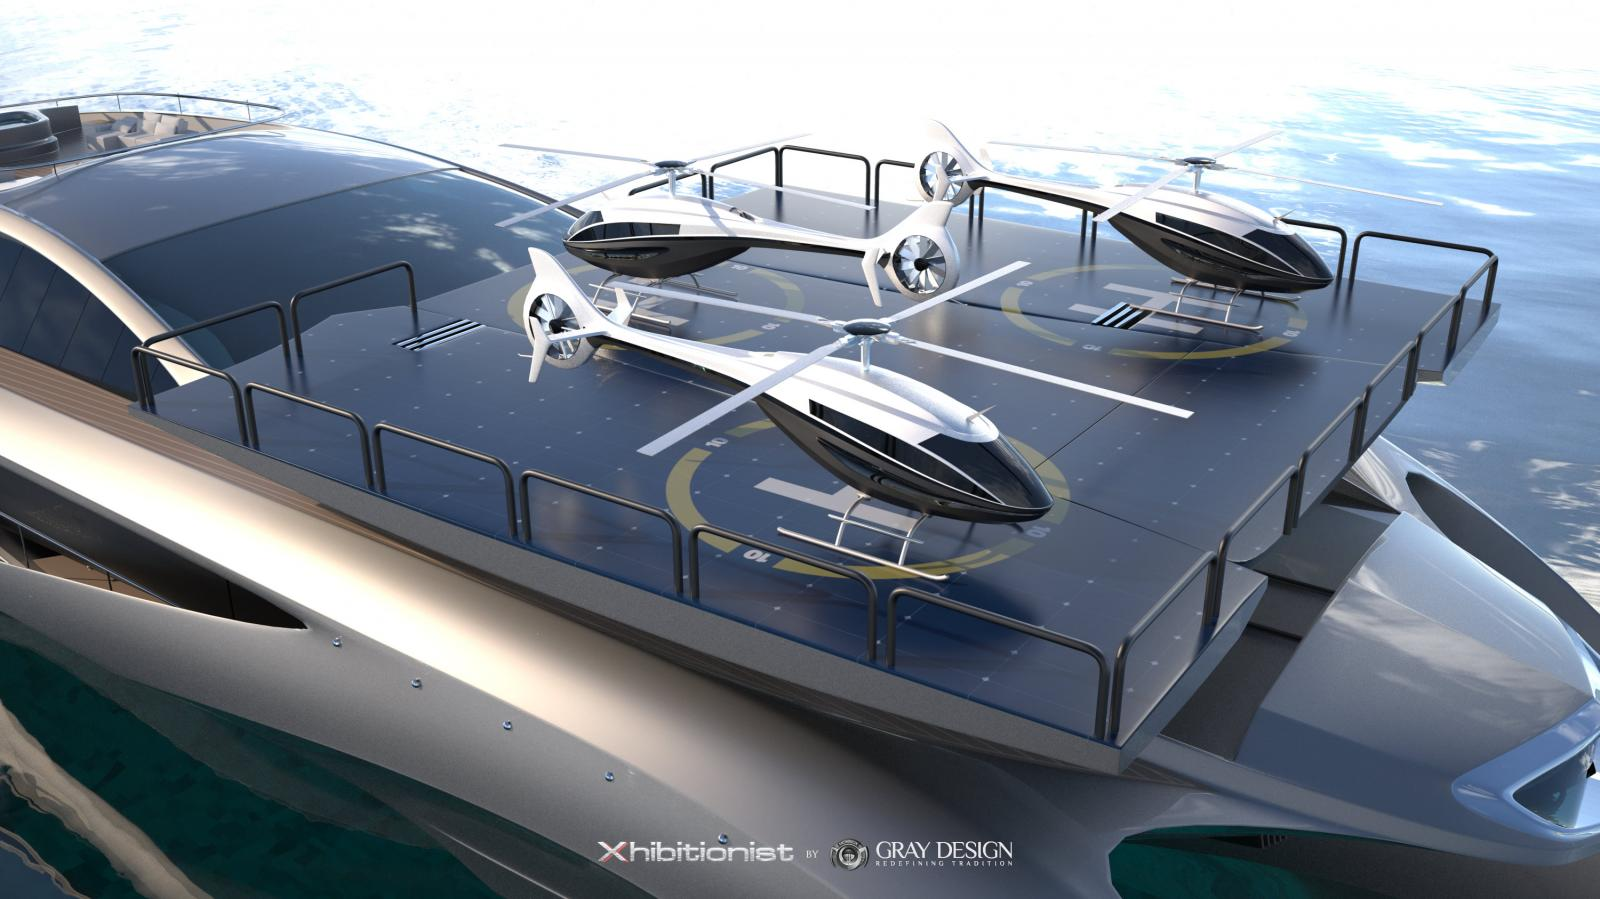 Gray-Design-Xhibitionist-yacht-and-Xhibit-G-car-4